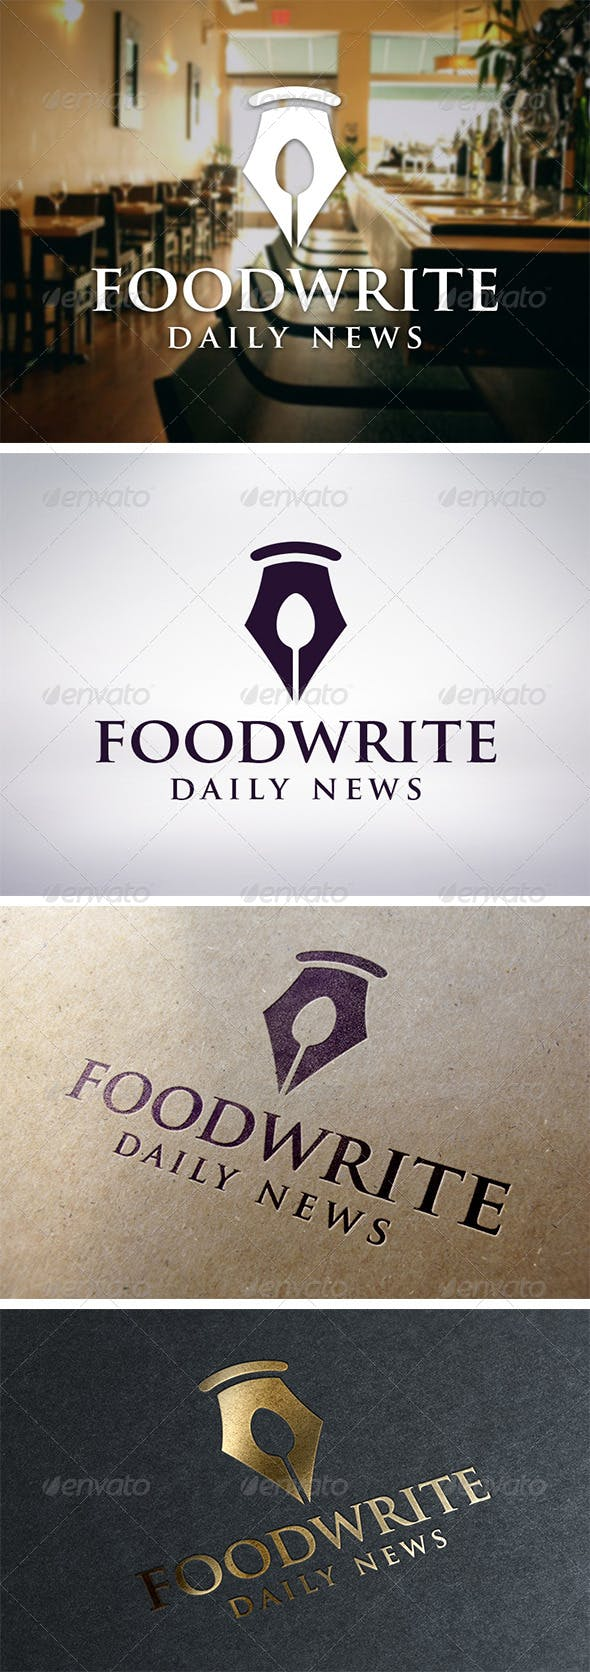 recipe writer logo template by bosstwinsmusic graphicriver